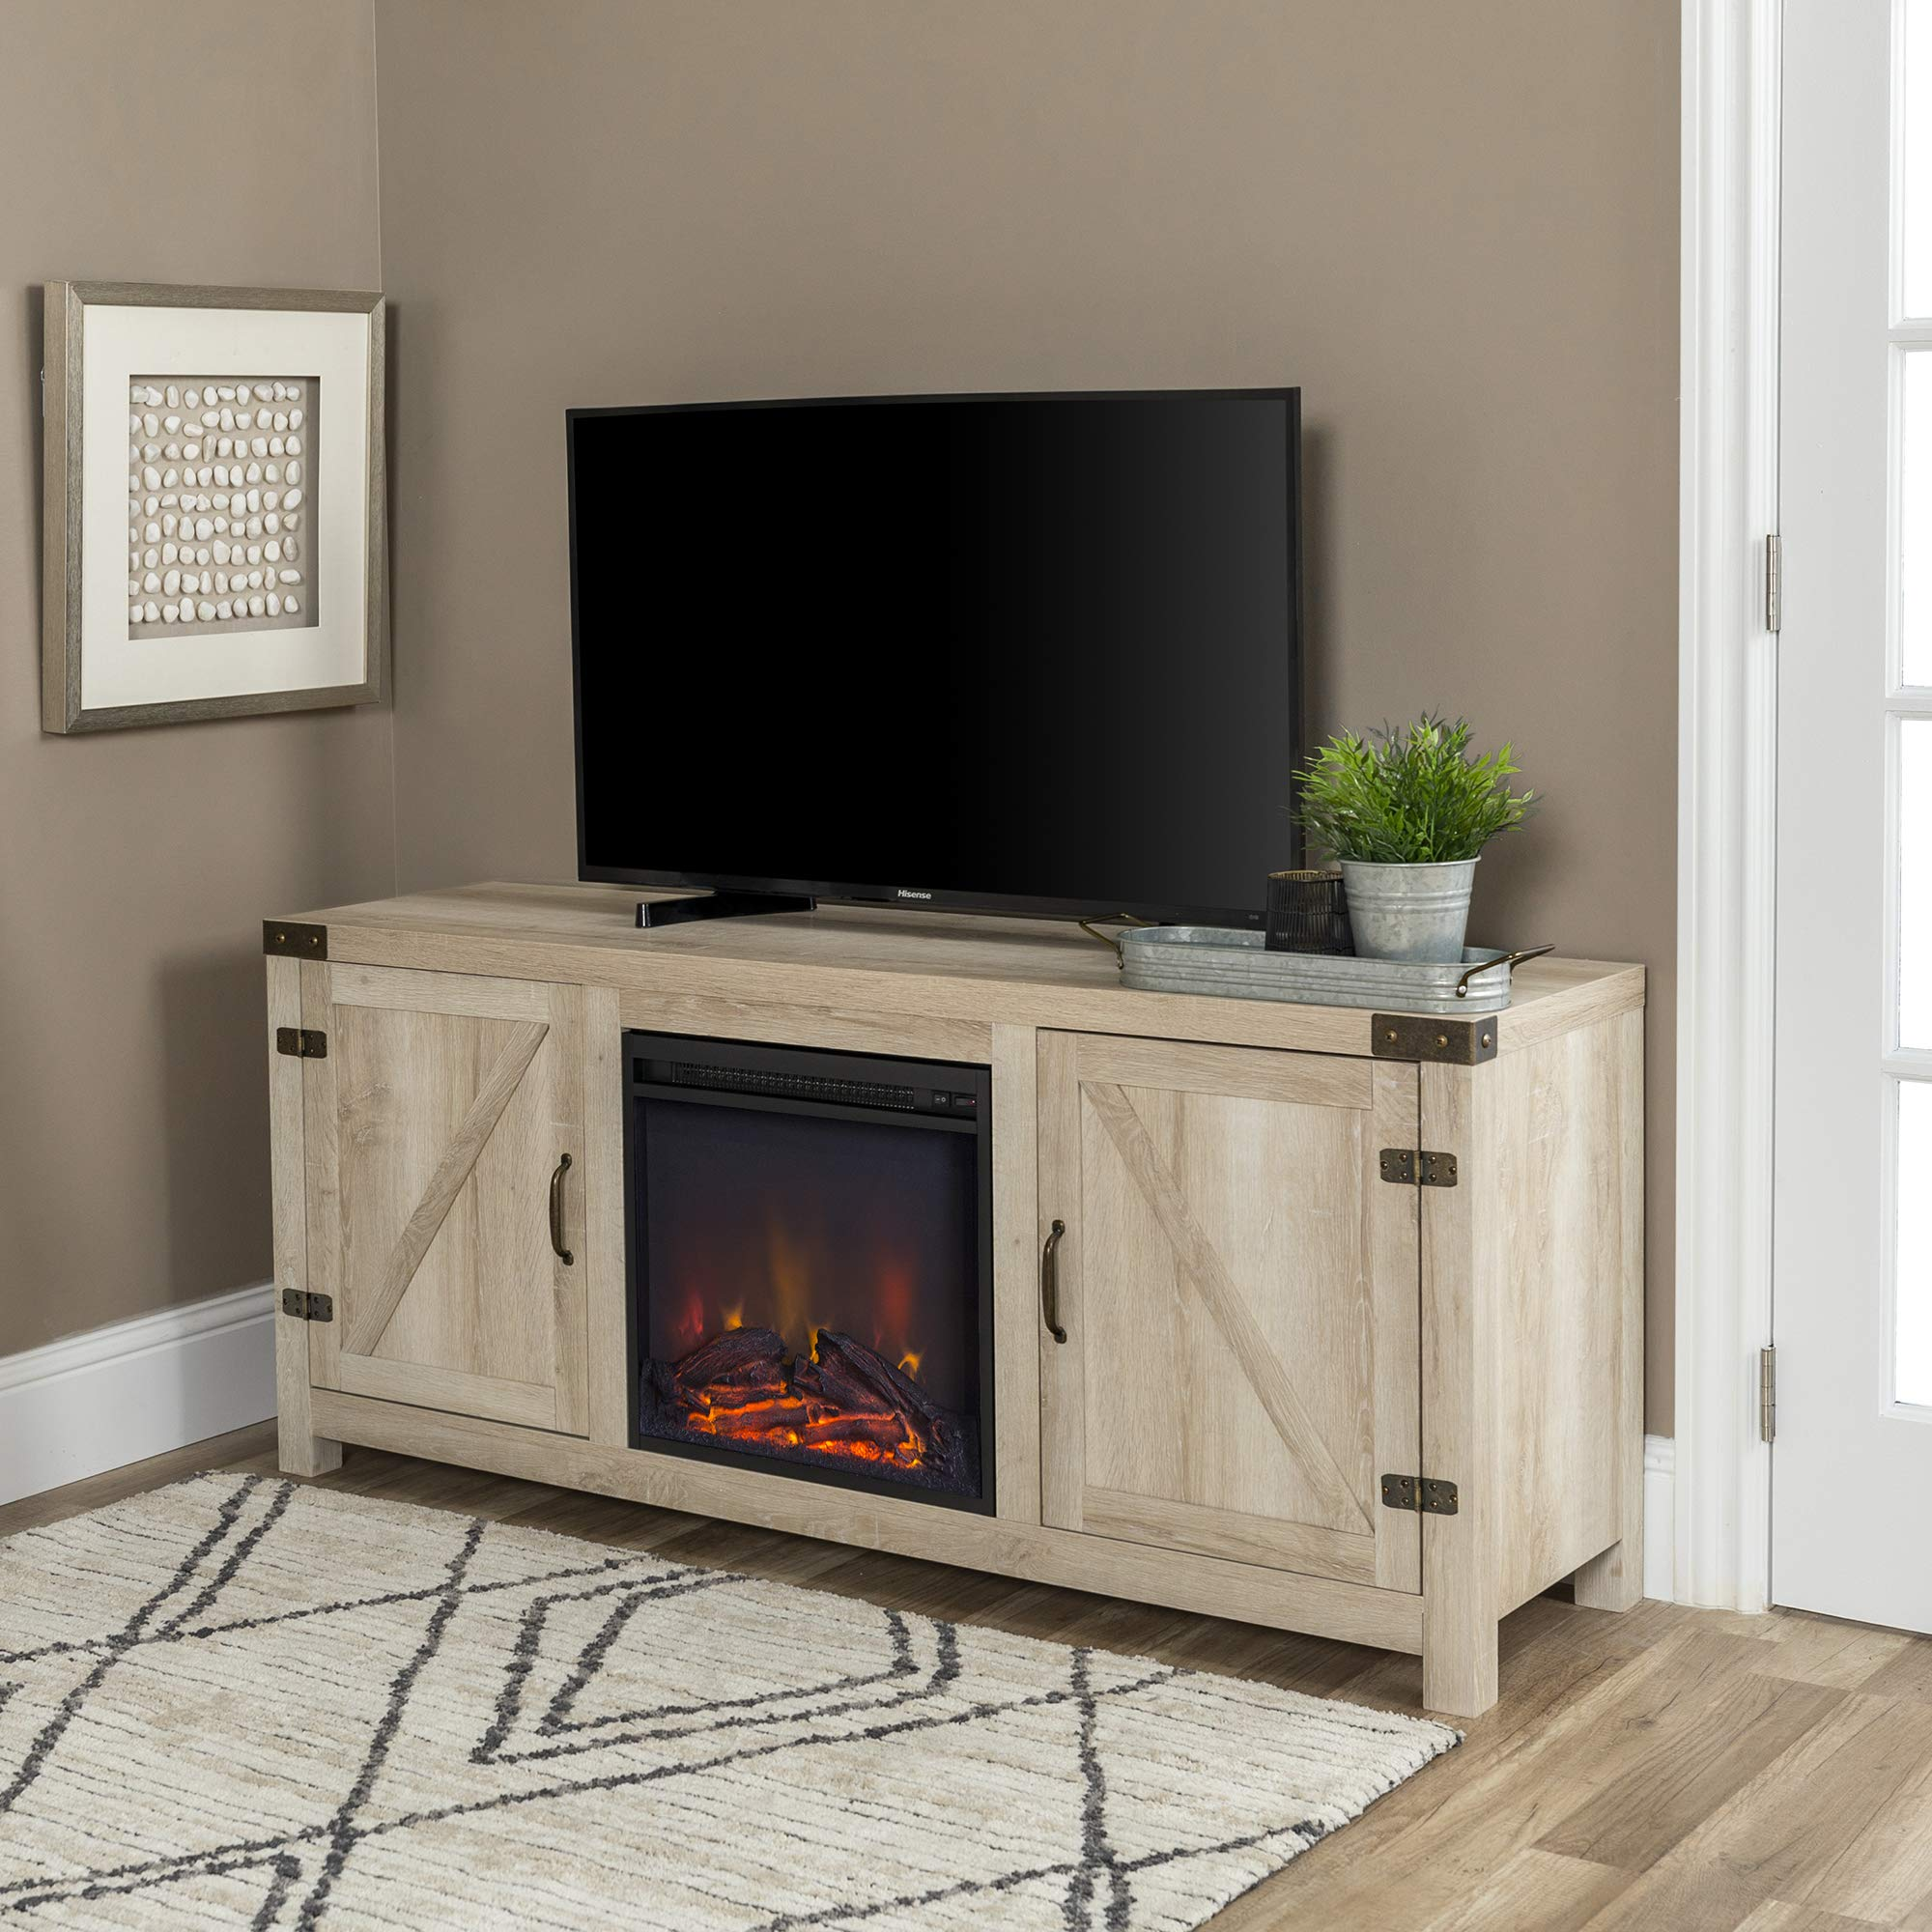 WE Furniture Farmhouse Barn Door Wood Fireplace Stand for TV's up to 64'' Living Room Storage, 58'', White Oak by WE Furniture